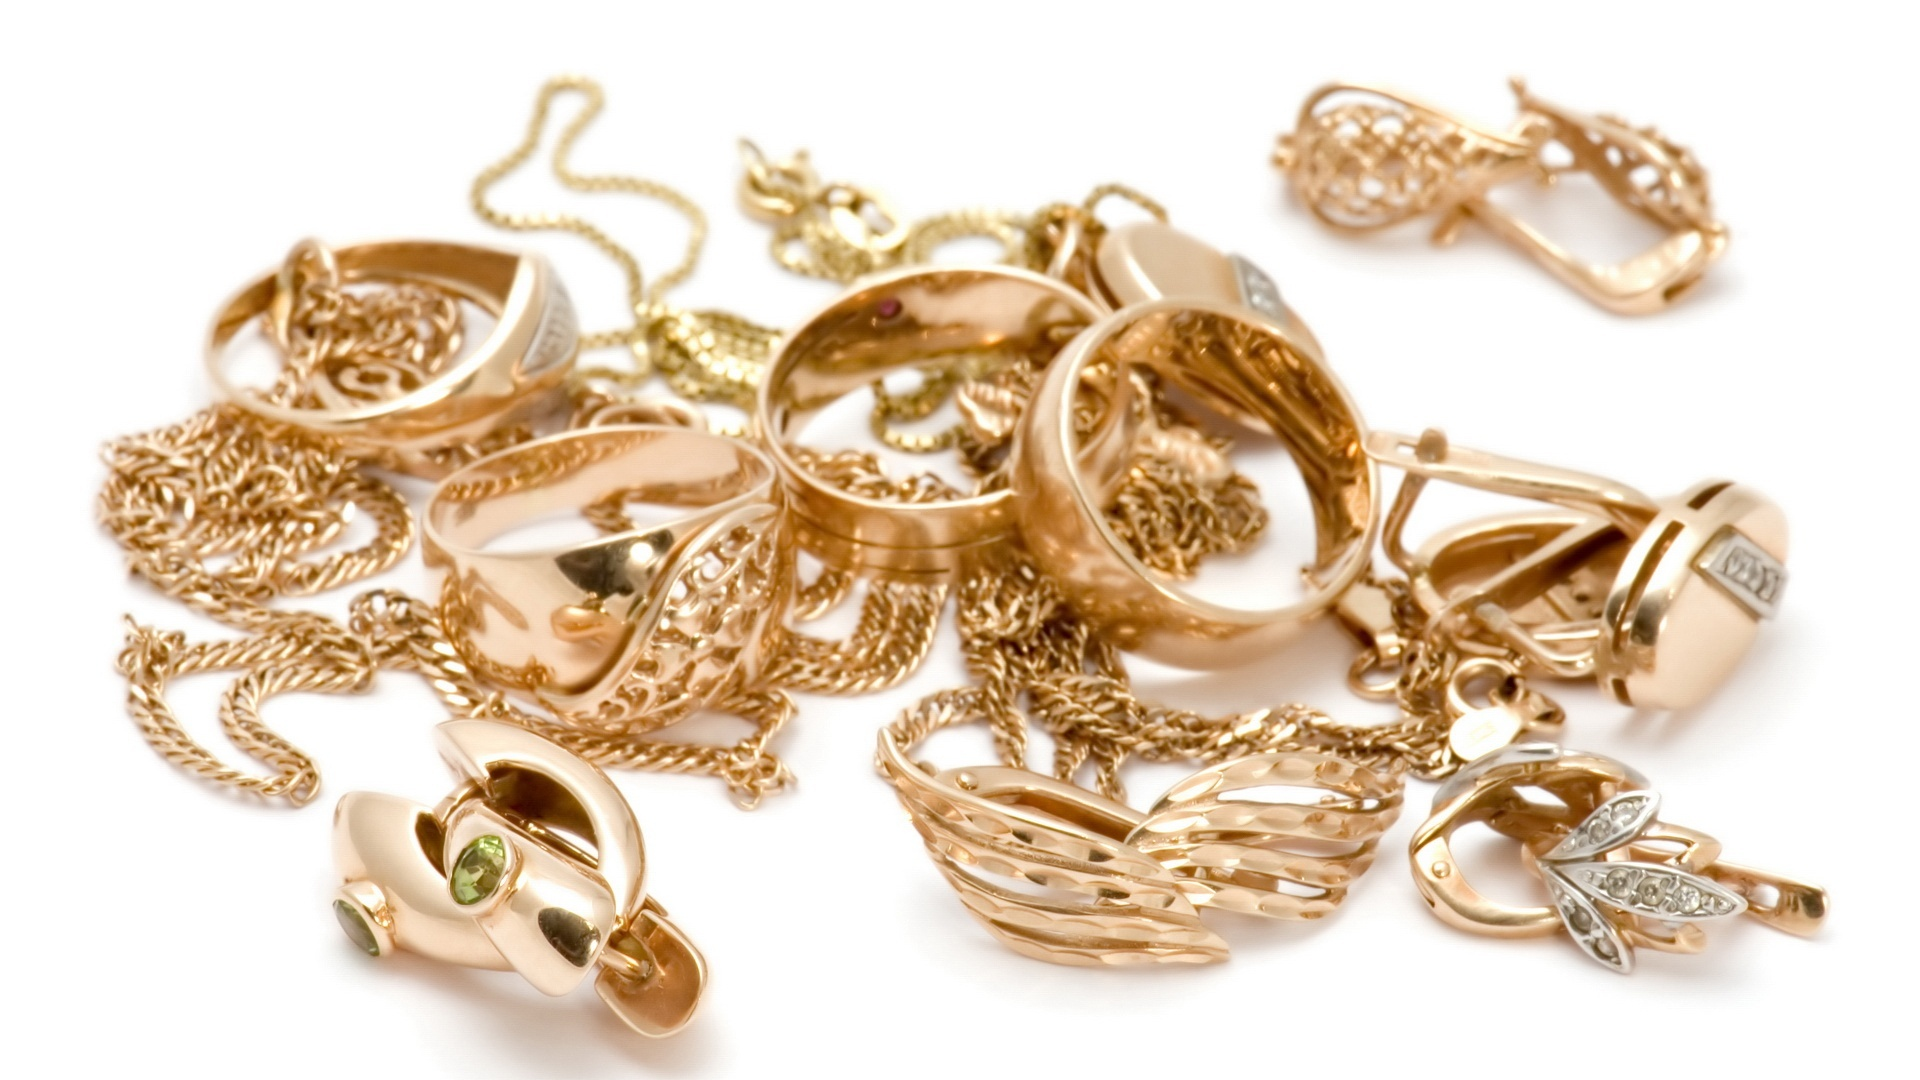 Bunch of Golden Jewelry 4760.82 Kb